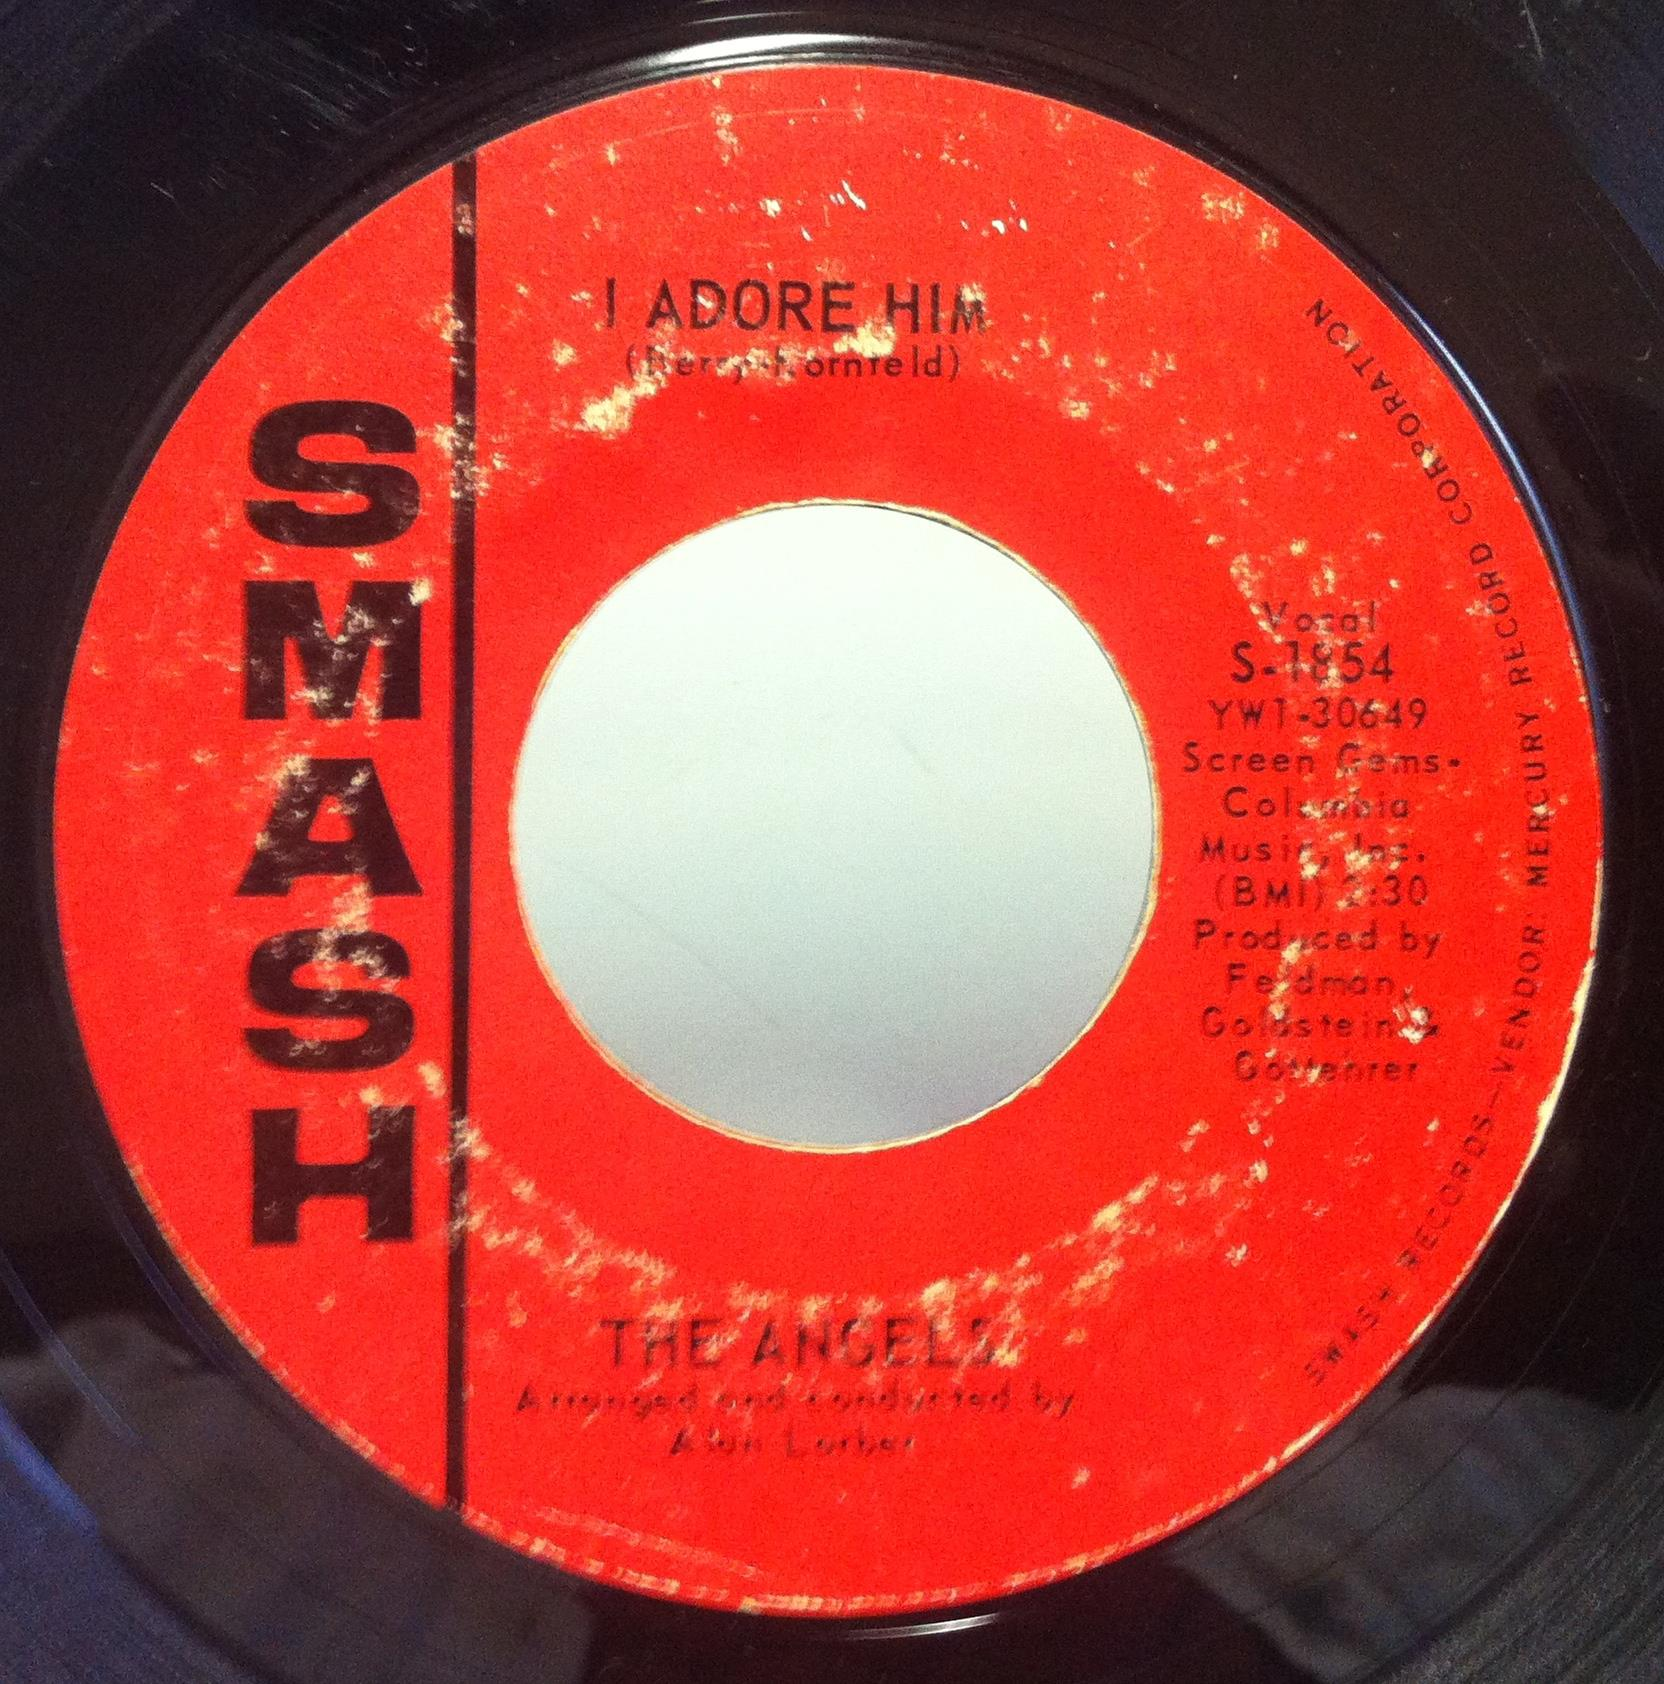 "Angels - The Angels I Adore Him / Thank You & Goodnight 7"" Vg+ S-1854 Smash 1963 Usa 45 (i Adore Him"